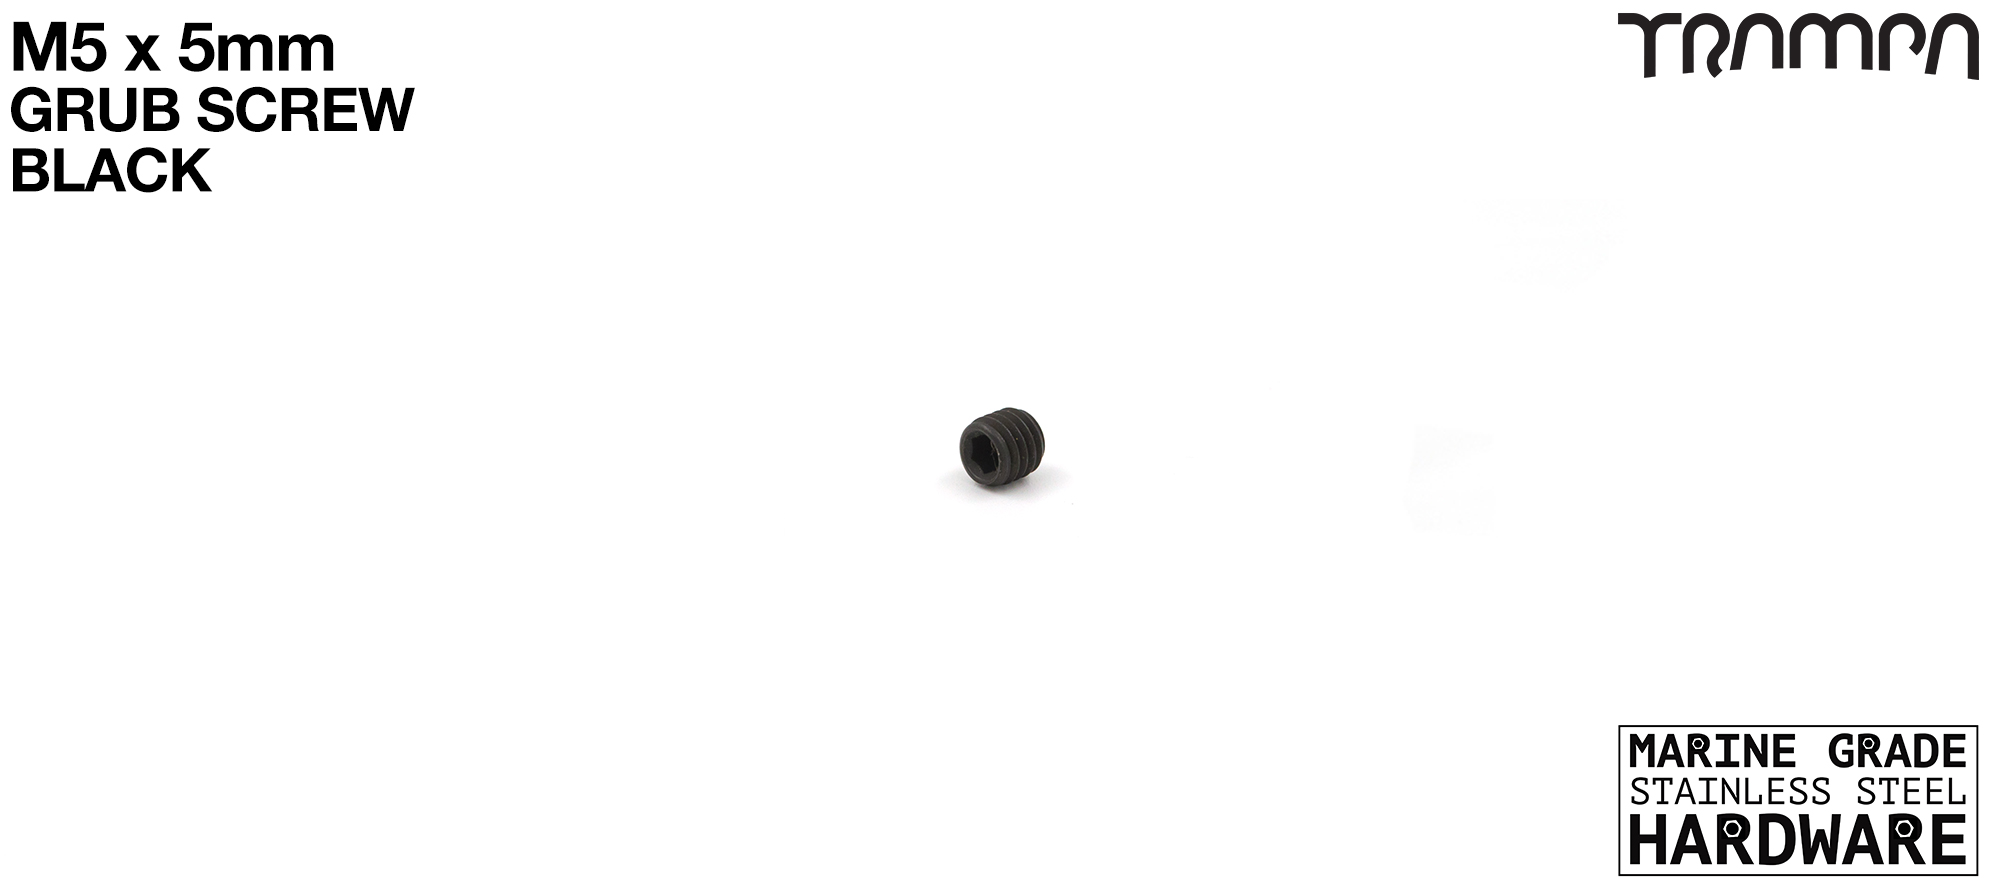 M5 x 5mm Black Steel Grub Screw Marine Grade Stainless Steel - Connects into Motor Mount to give Axle position on Mountainboards